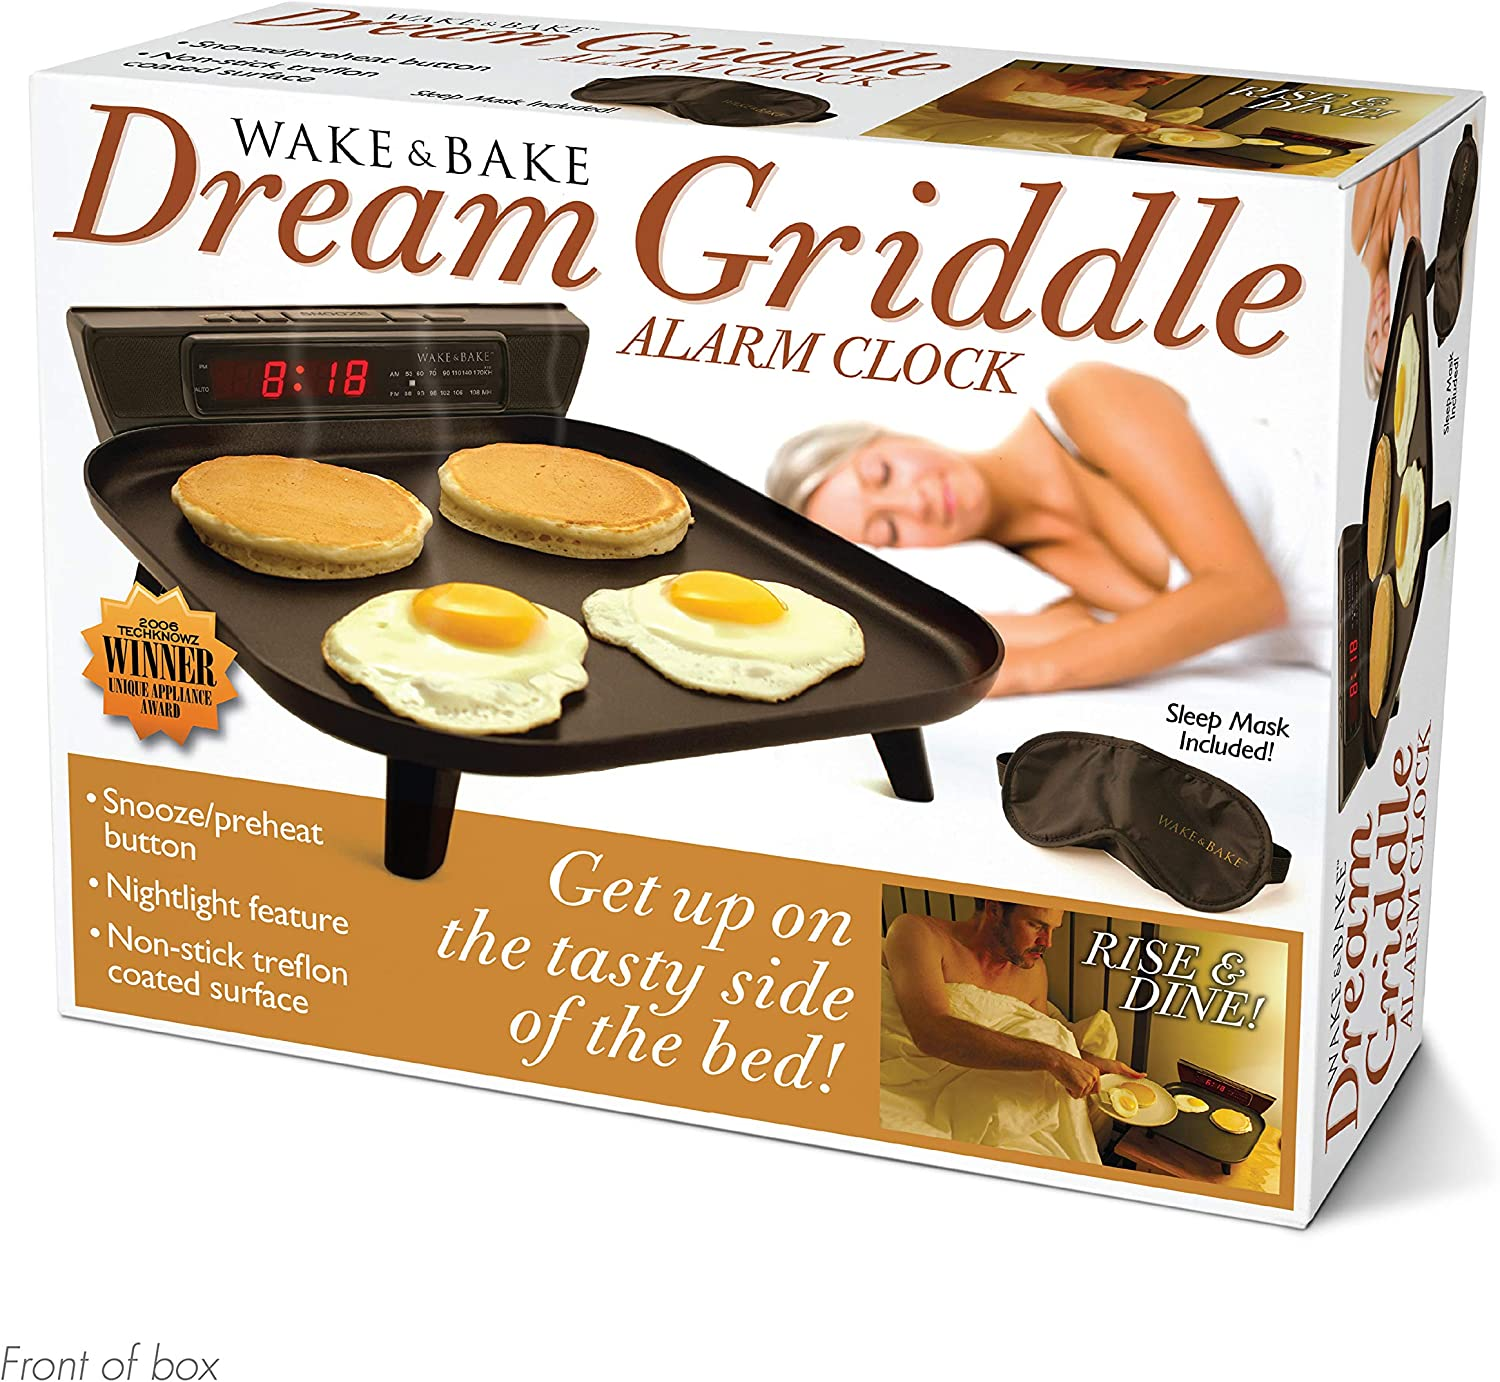 """Prank Pack """"Wake & Bake Griddle"""" - Wrap Your Real Gift in a Prank Funny Gag Joke Gift Box - by Prank-O - The Original Prank Gift Box   Awesome Novelty Gift Box for Any Adult or Kid!"""